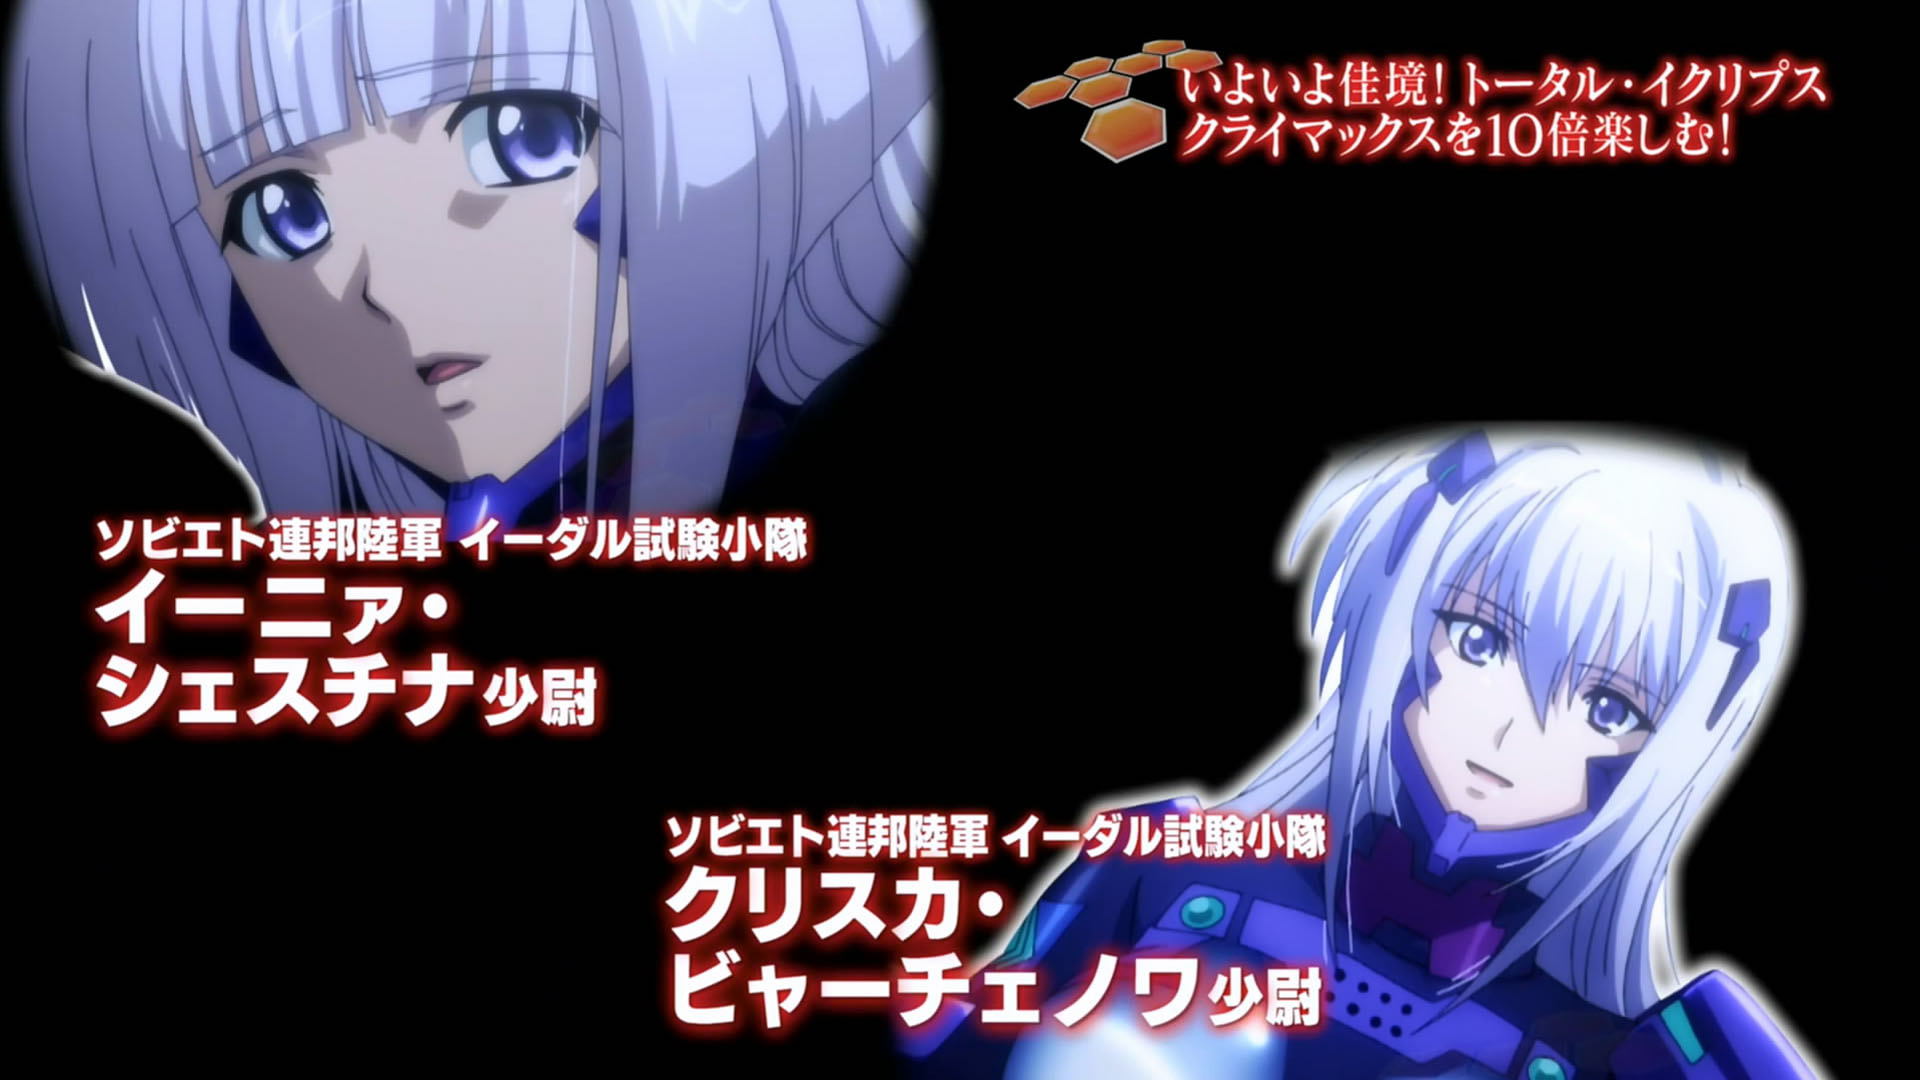 Muv Luv Alternative Total Eclipse Special Random Curiosity